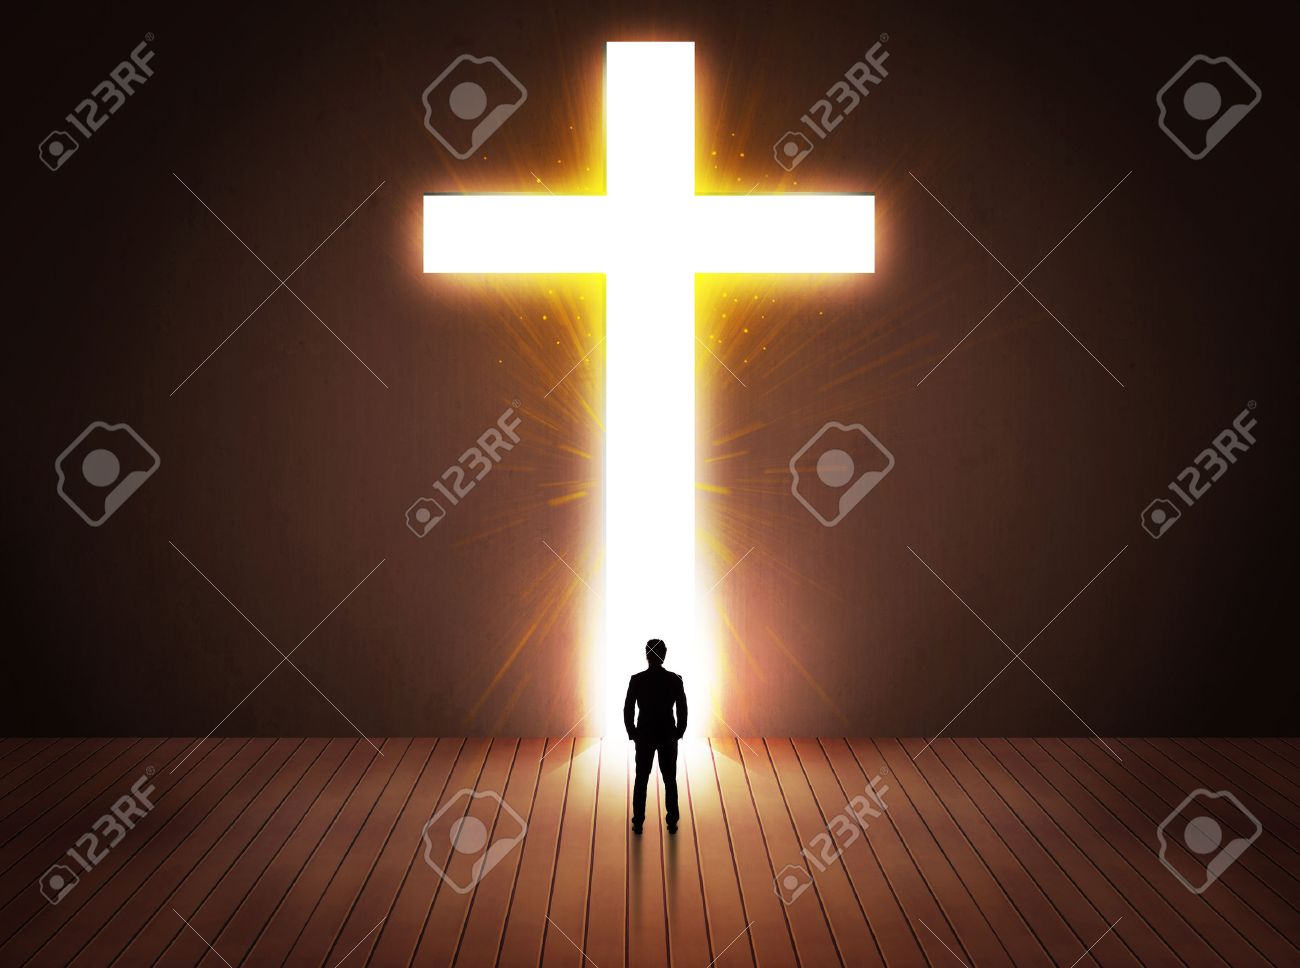 jesus christ silhouette images u0026 stock pictures royalty free